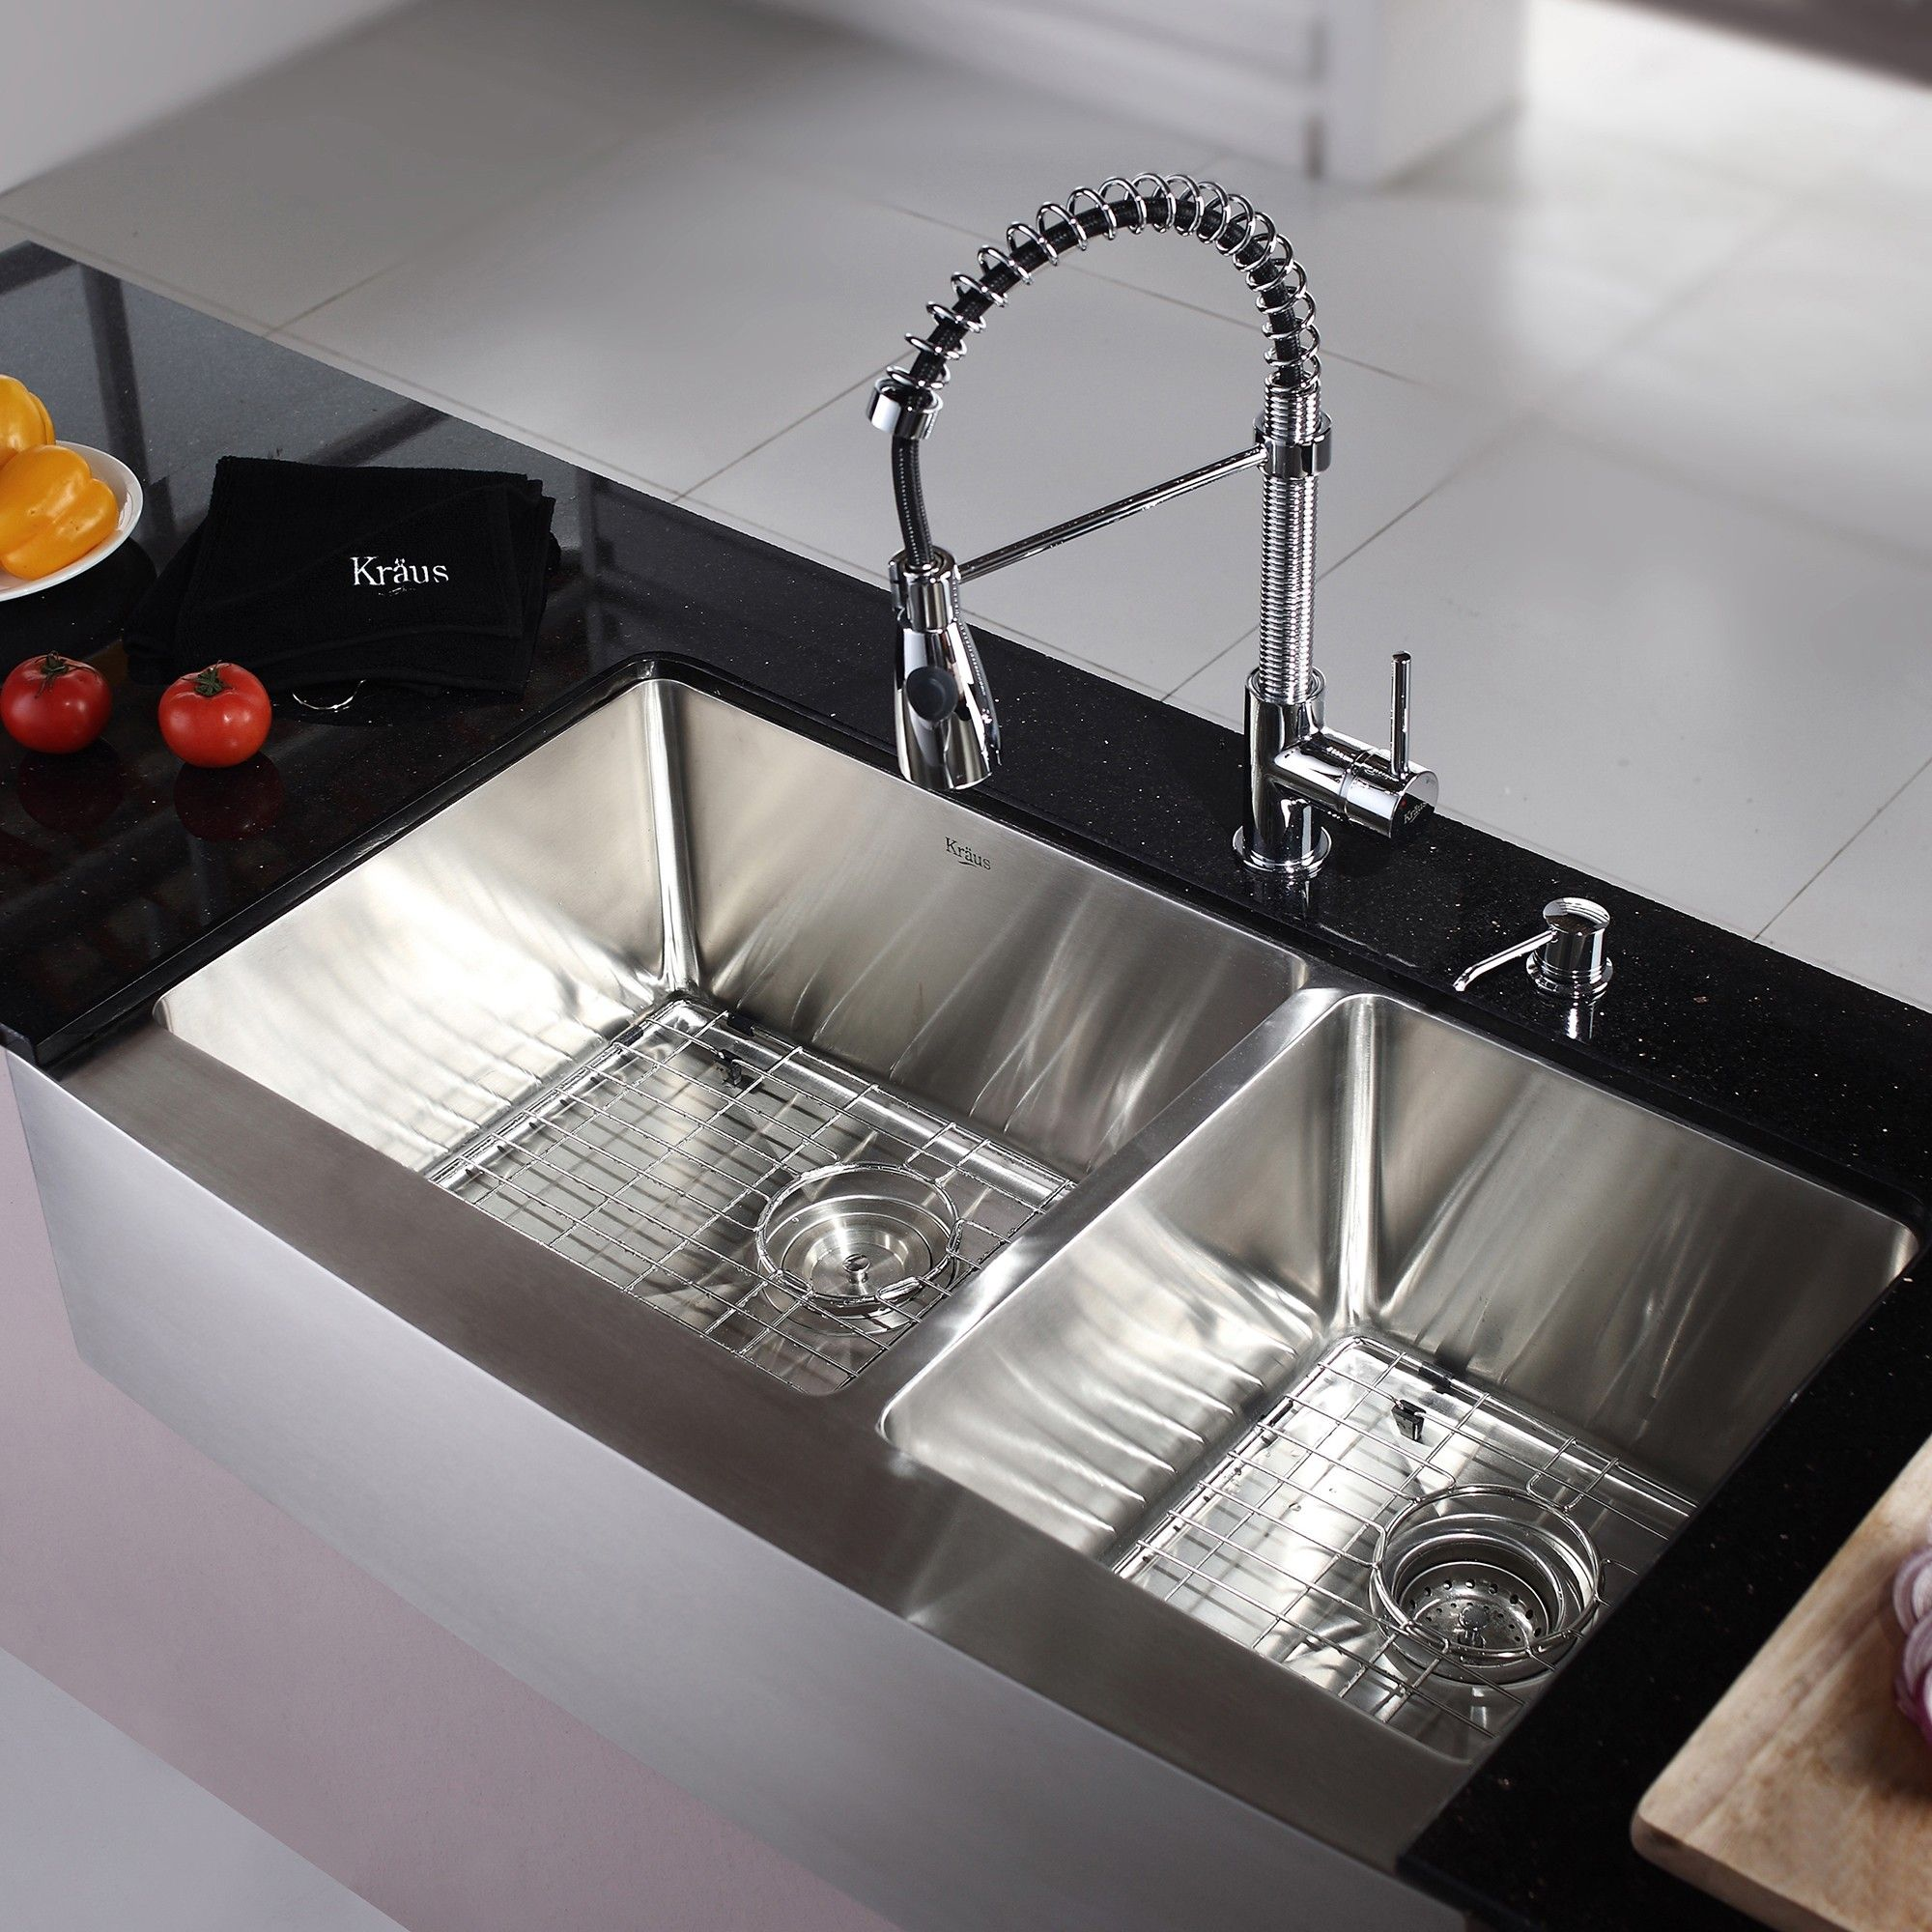 Kraus 36 Inch Farmhouse Double Bowl Stainless Steel Kitchen Sink With Kitchen Faucet And So Farmhouse Sink Kitchen Farmhouse Apron Kitchen Sinks Kitchen Faucet